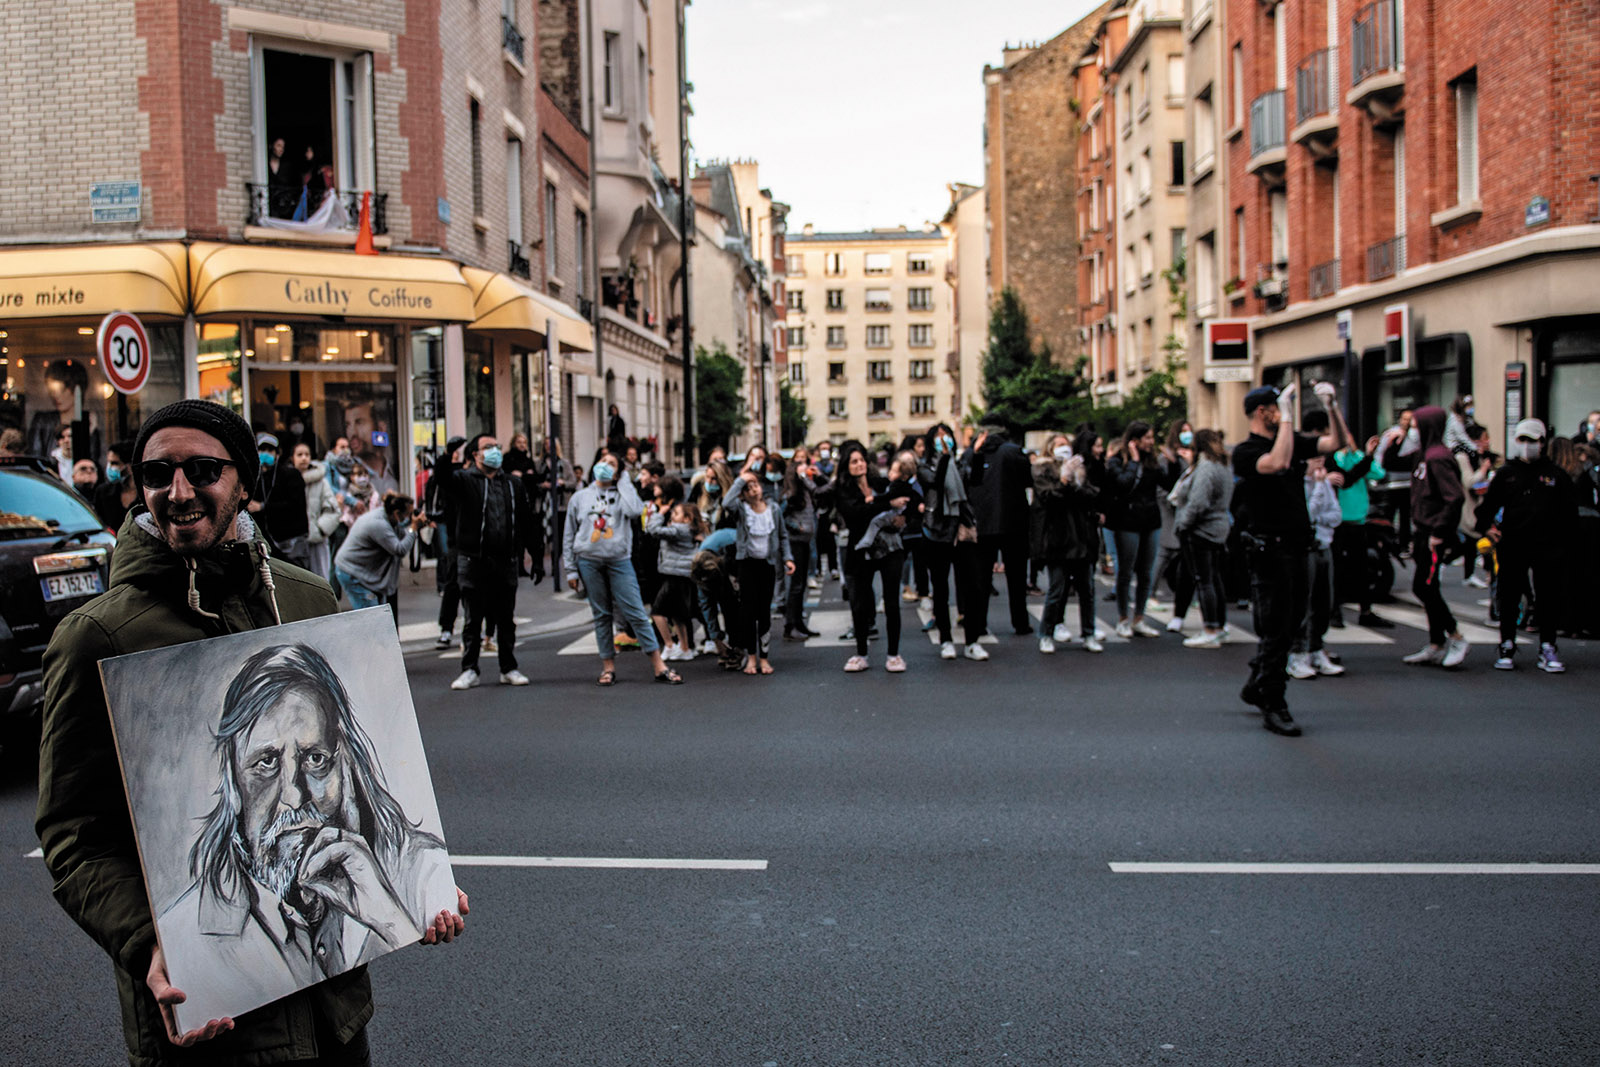 France: After Lockdown, the Street